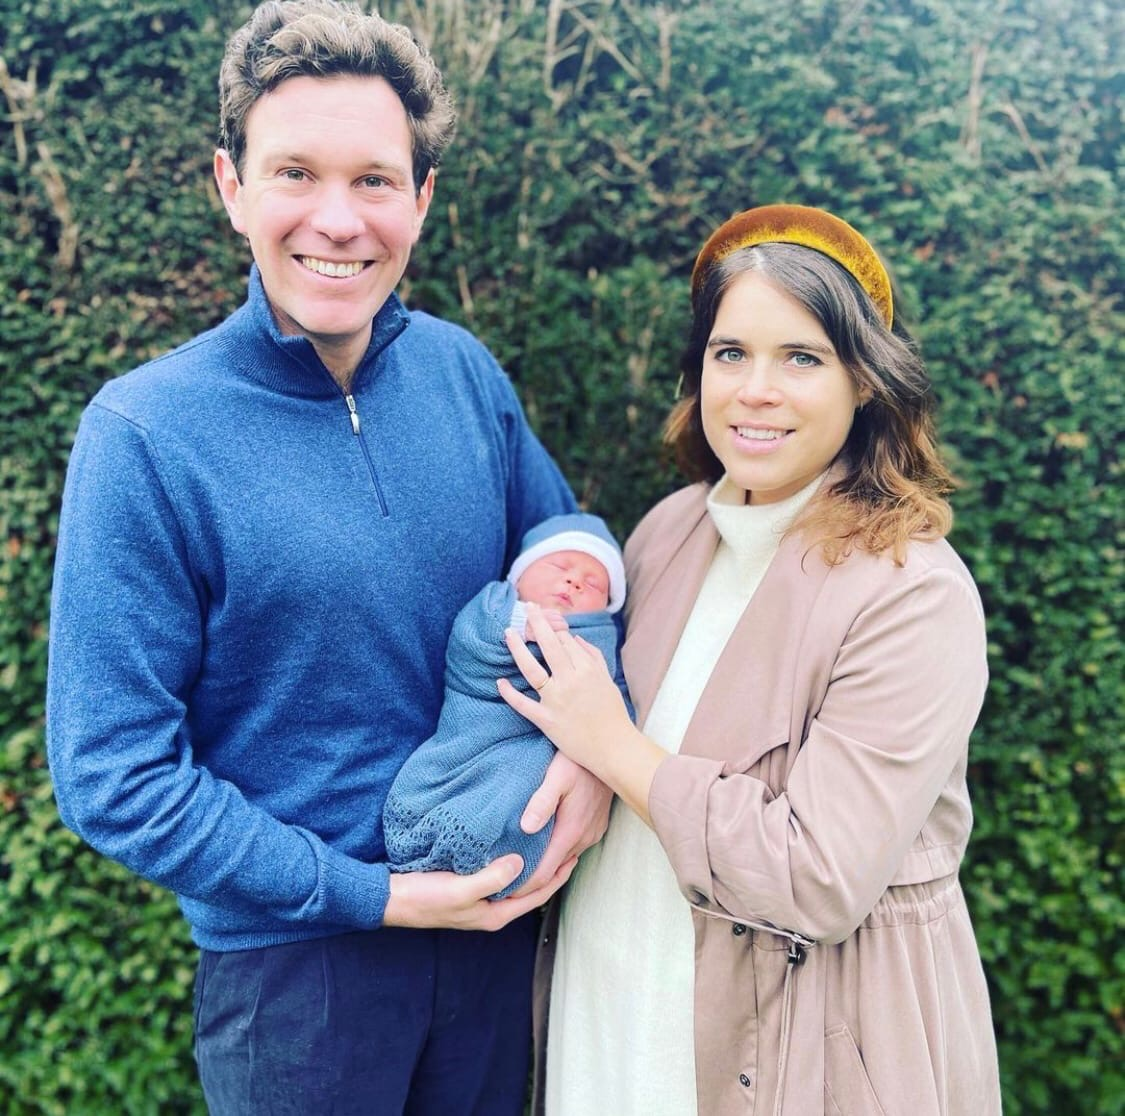 Princess Eugenia showed the first photo of her son